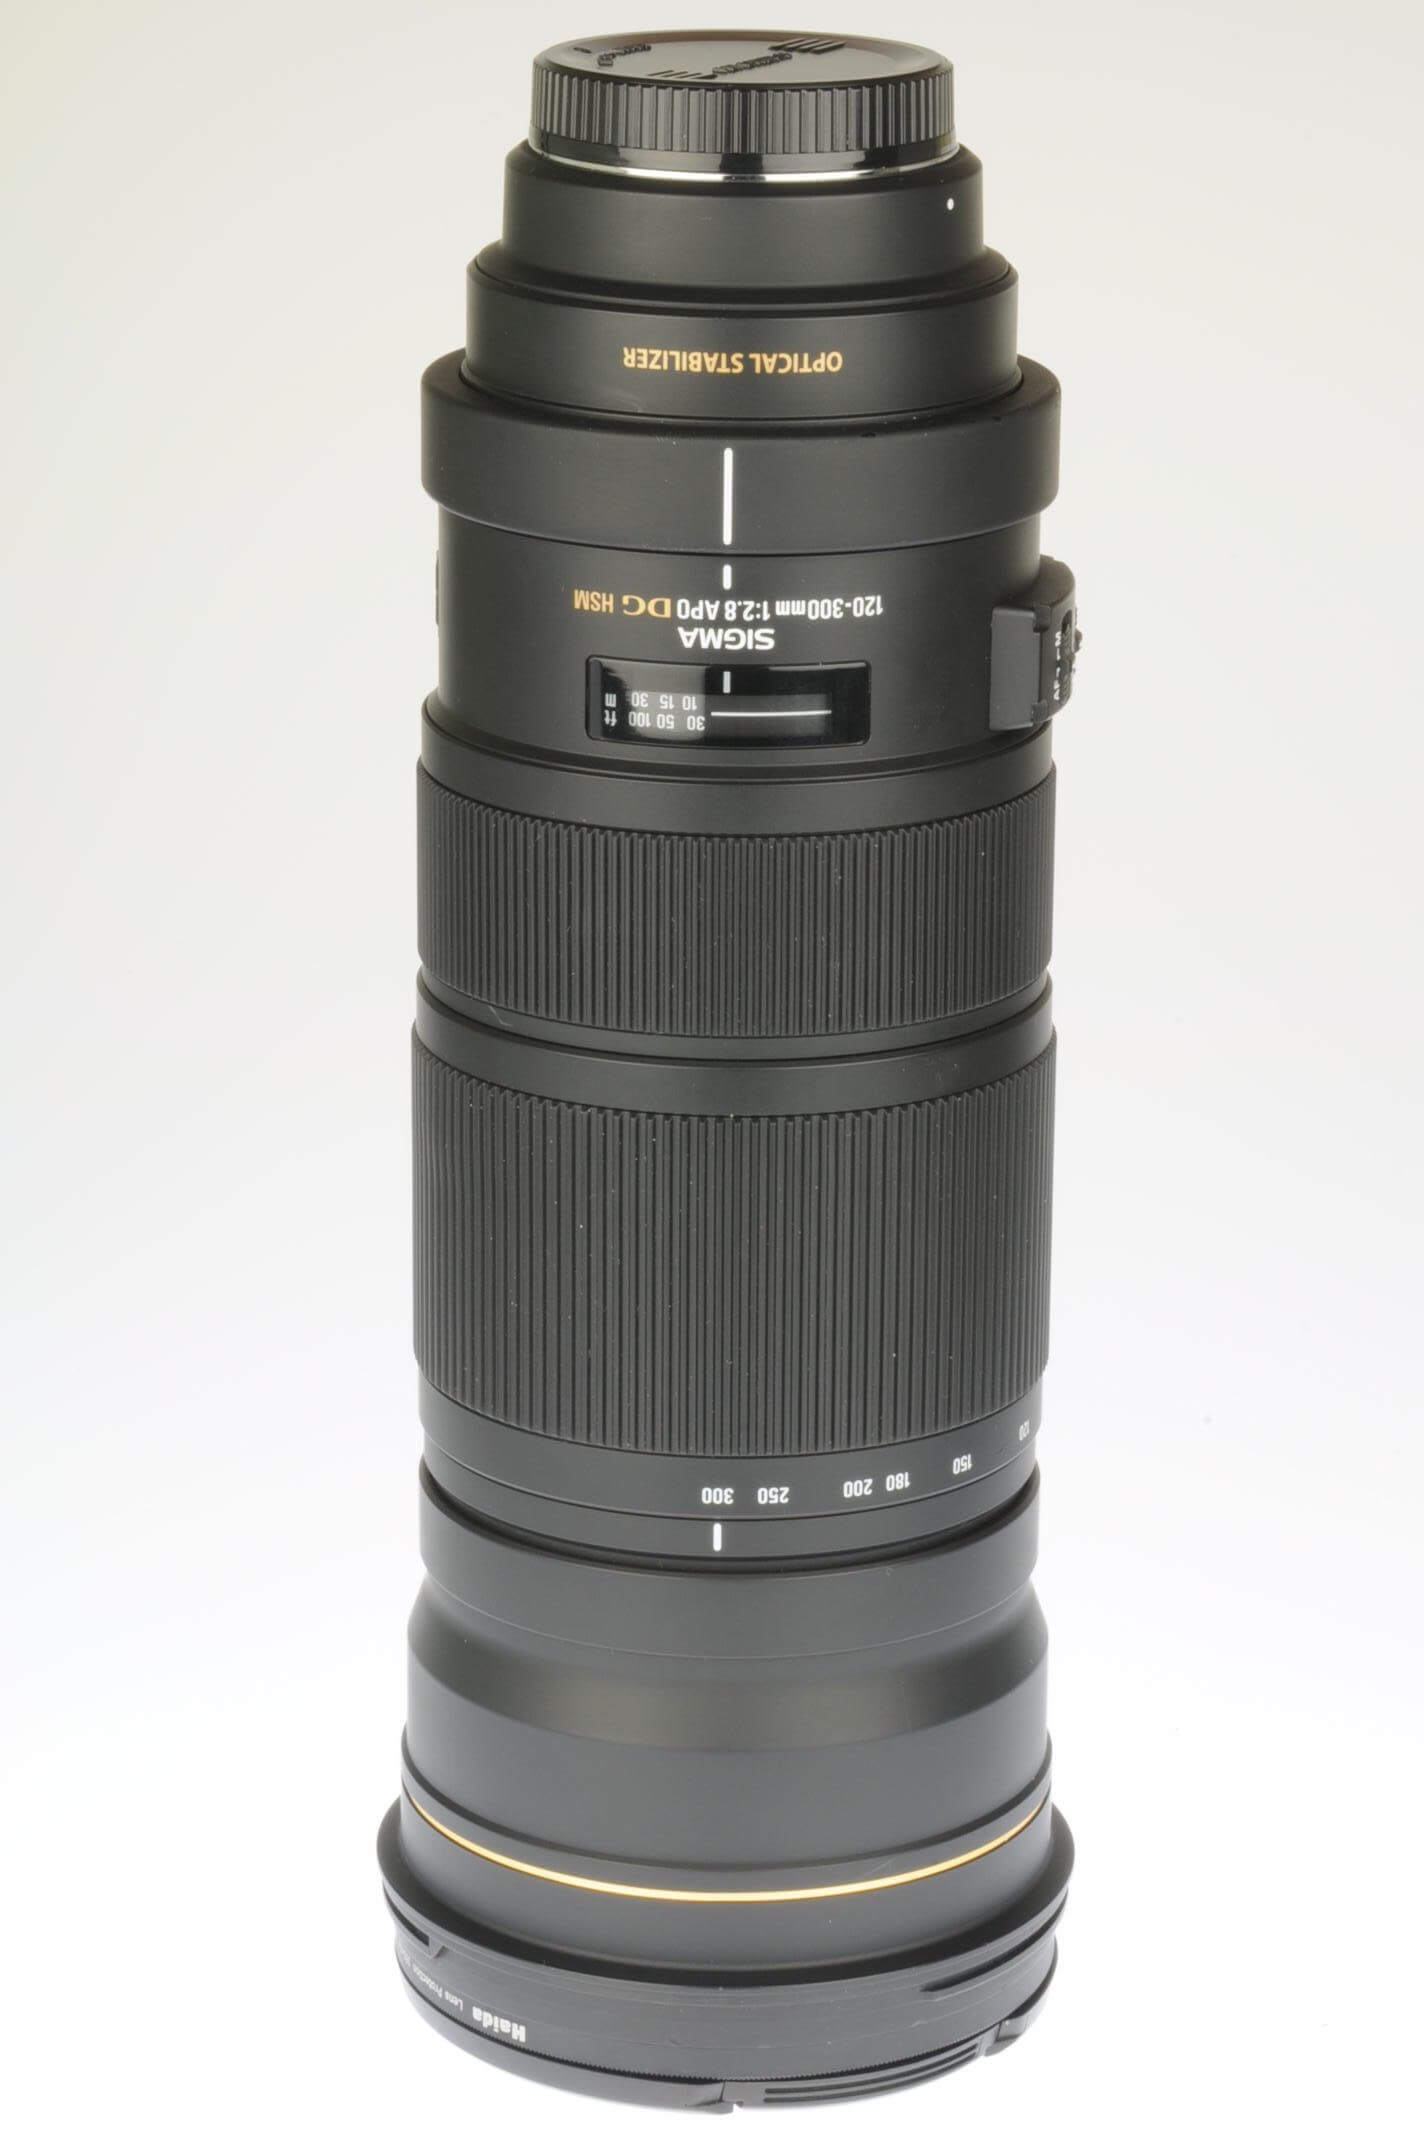 Sigma 120-300mm f2.8 APO DG HSM OS, Optical Stabilizer, Canon EOS fitting, case